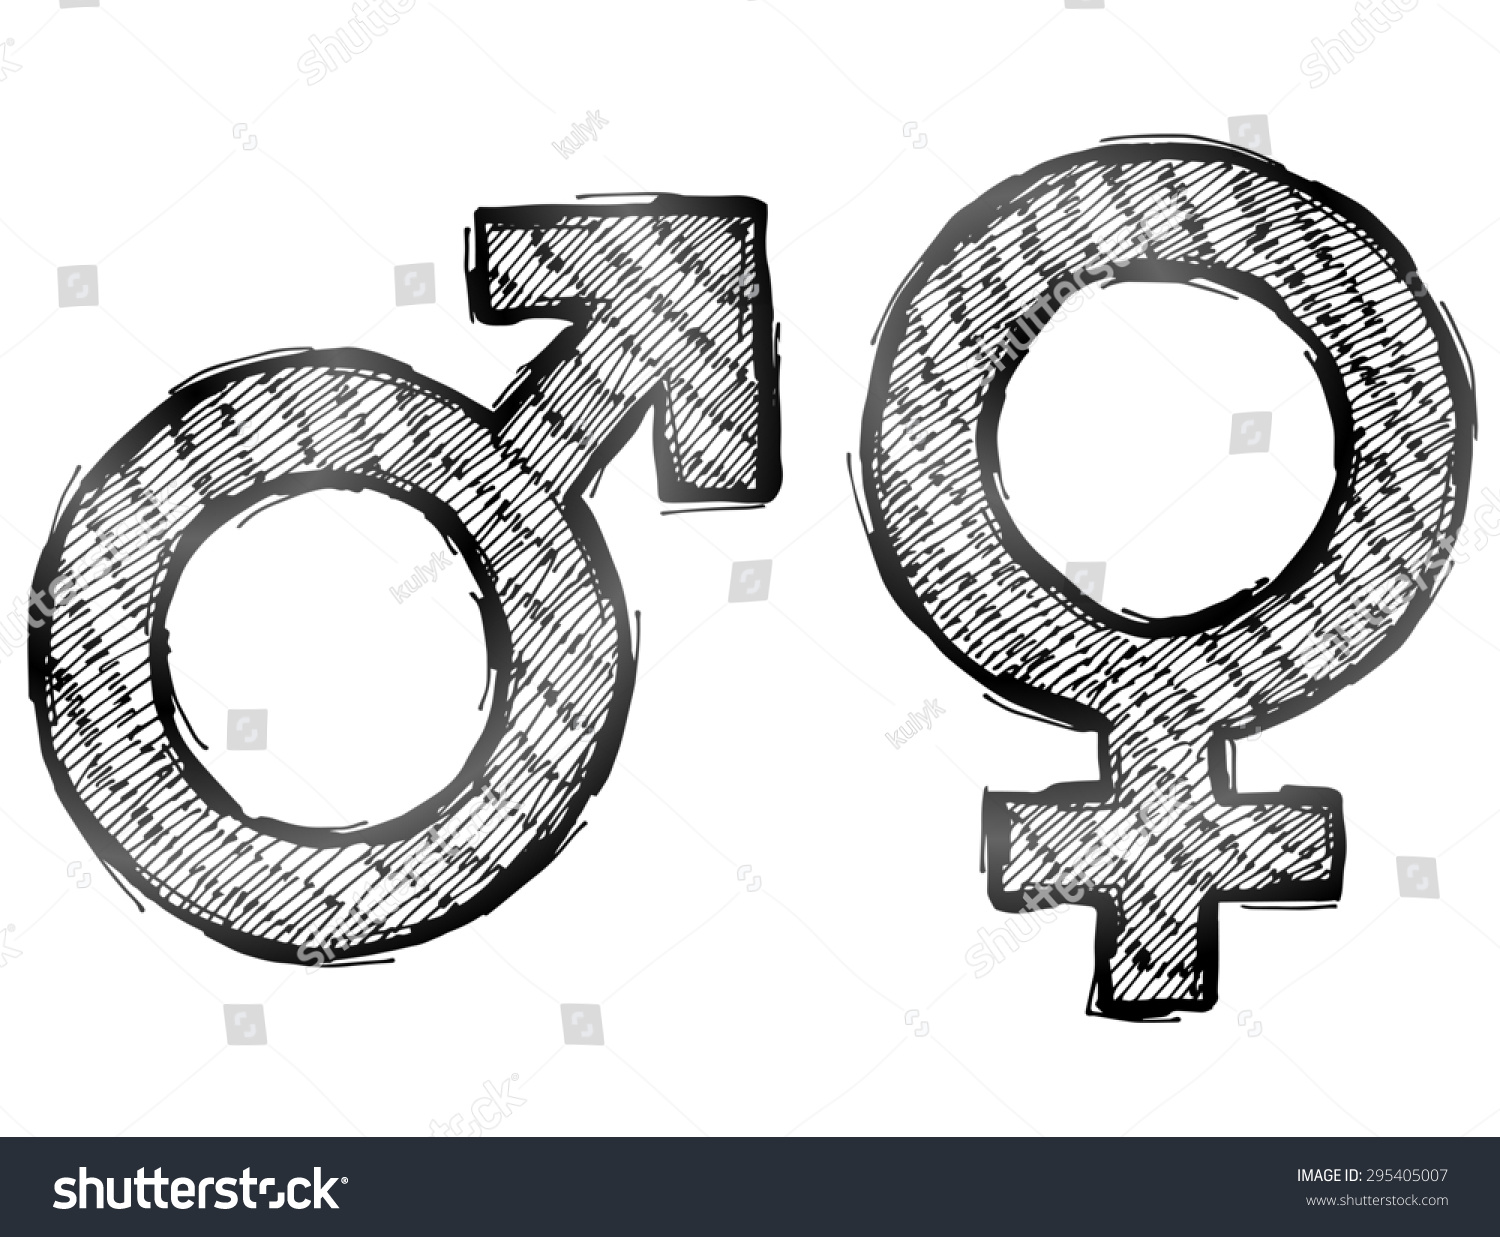 Hand drawn gender symbols light hatching stock illustration hand drawn gender symbols with light hatching sketch of man and woman signs in doodle biocorpaavc